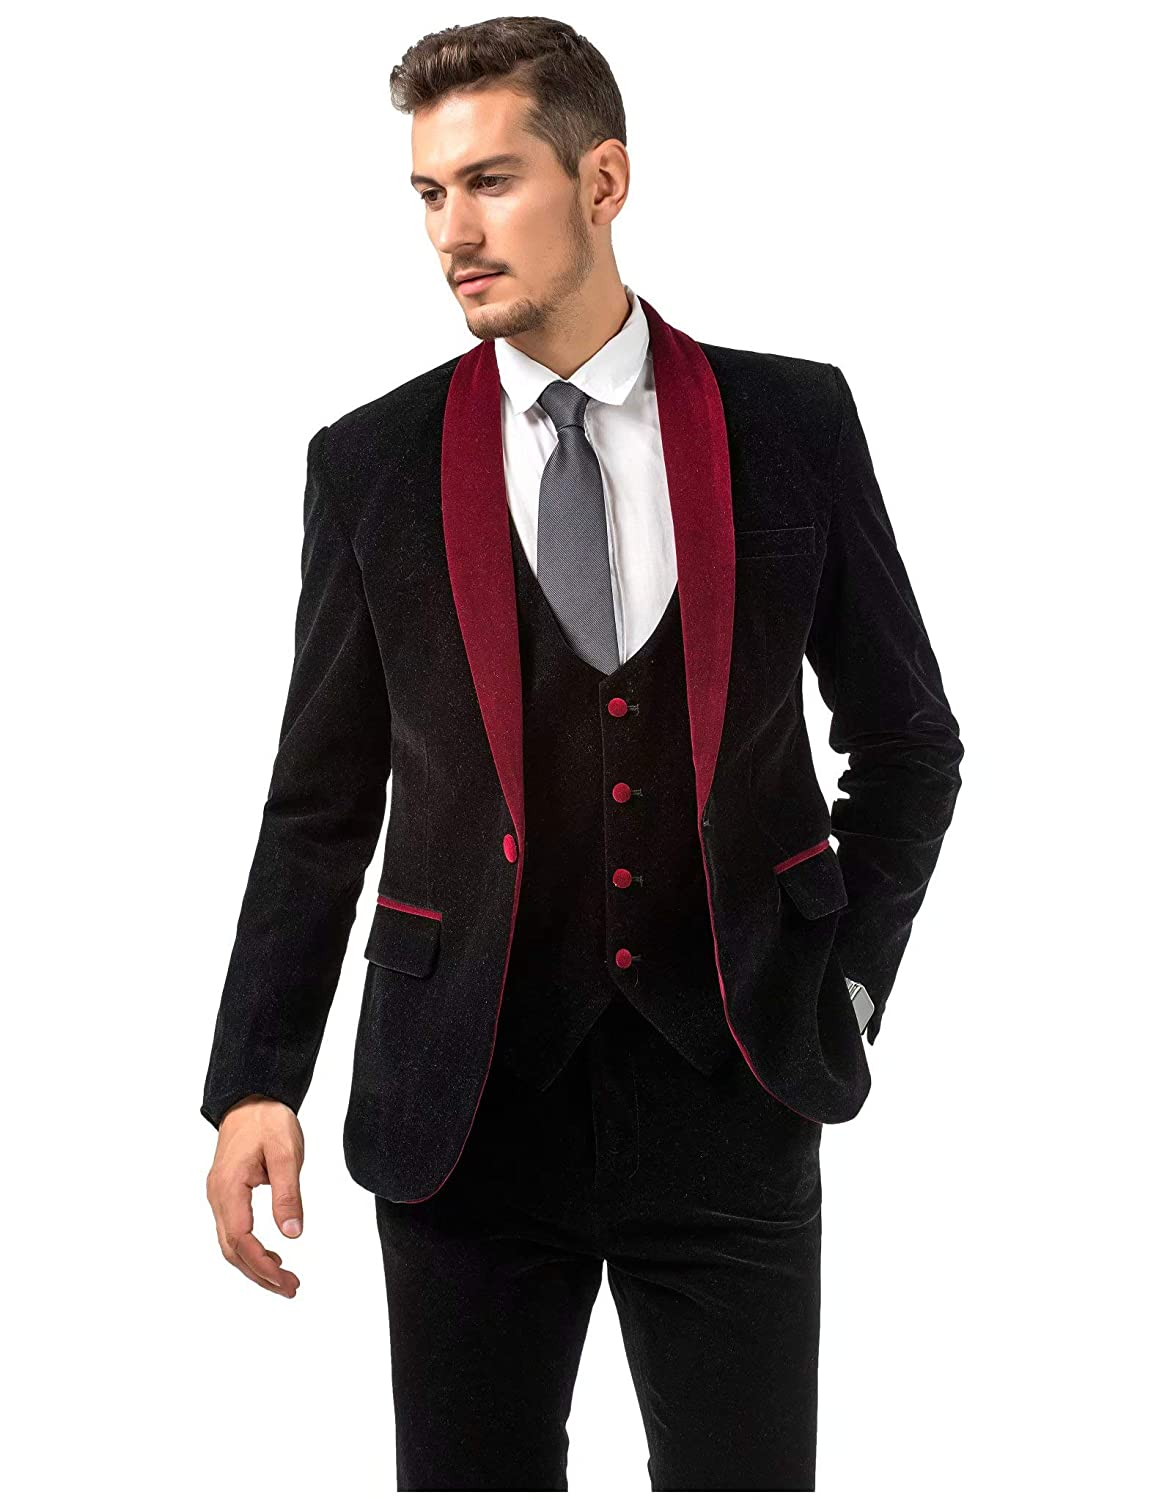 950fcc85b1be6 Jingmo Burgundy Royal Blue Black Velvet 3 Piece Suits for Men ...